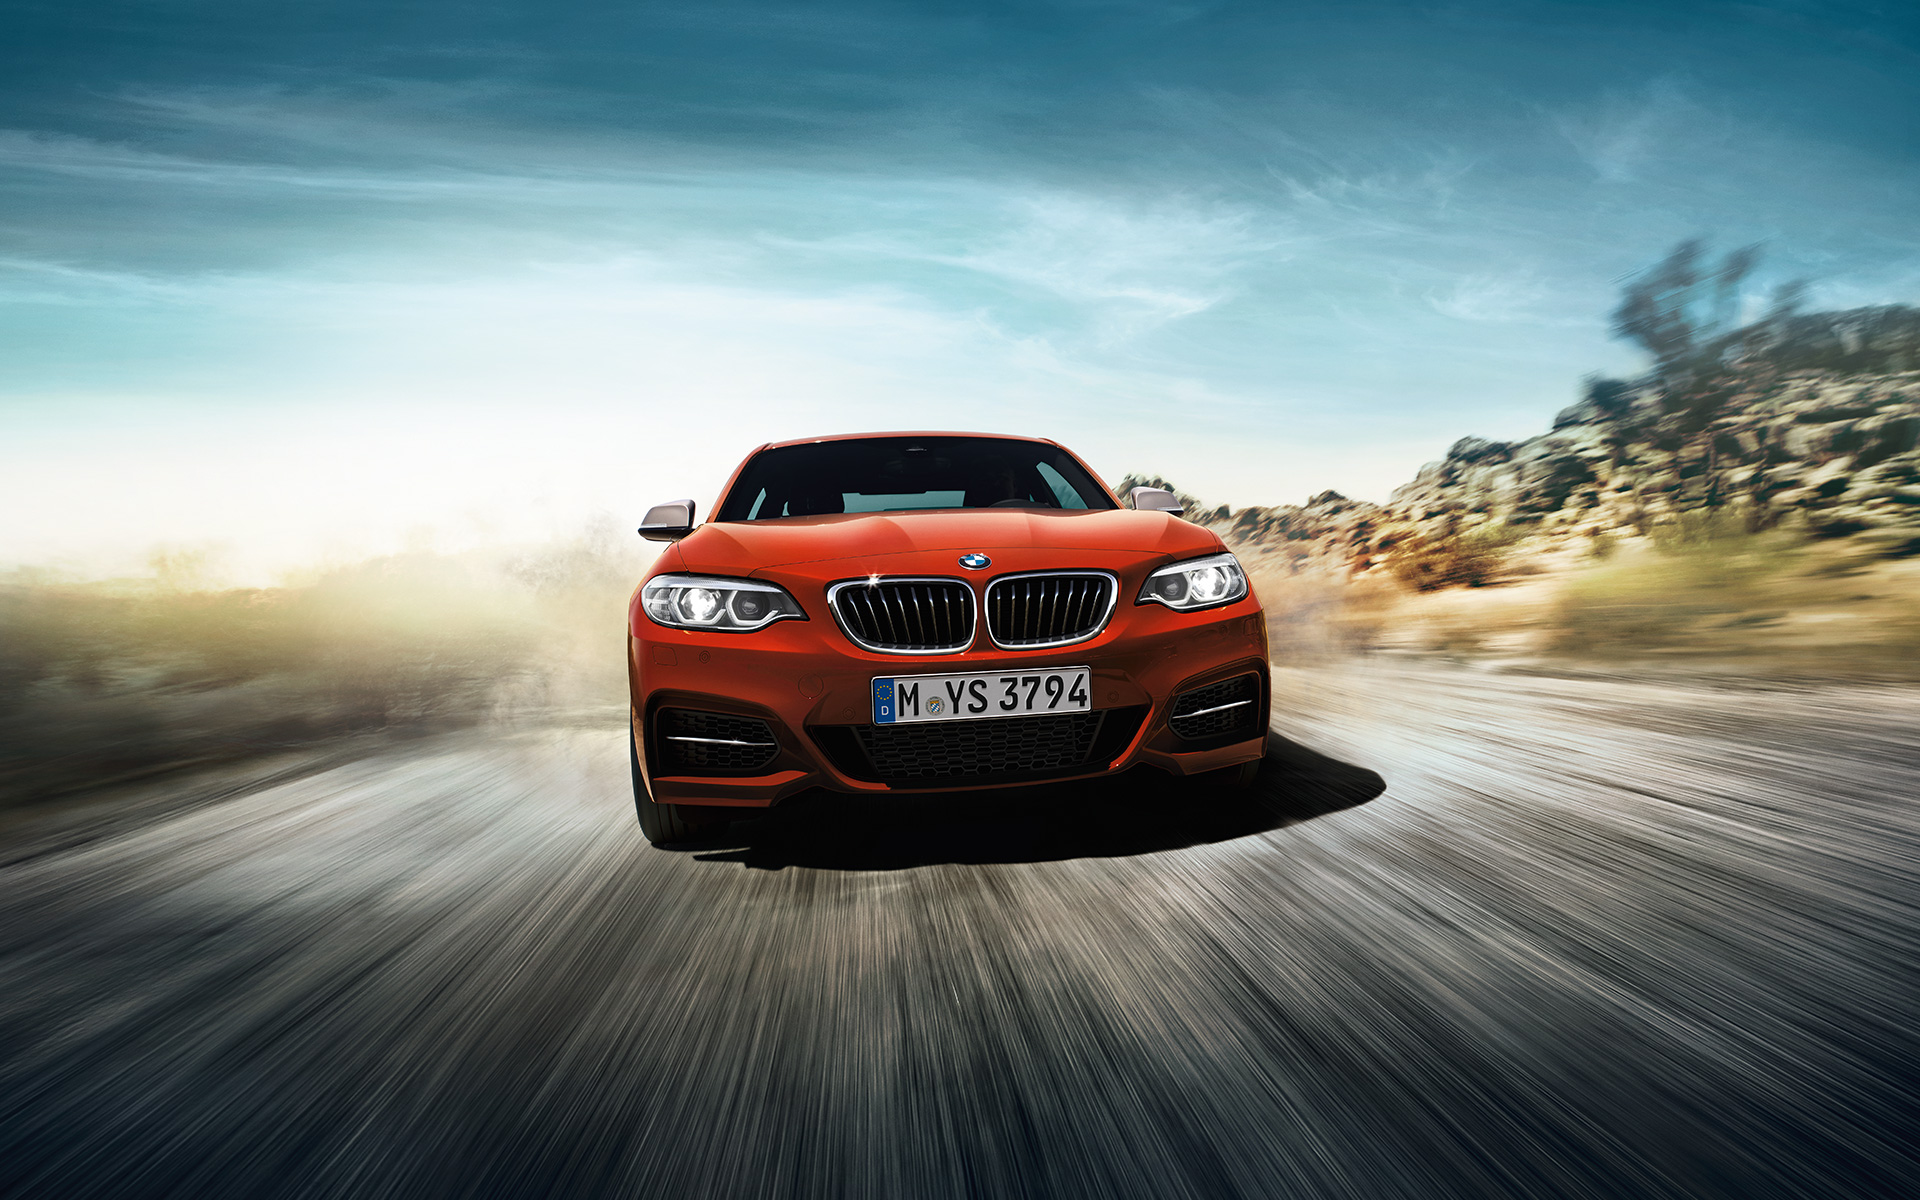 BMW 2series coupe imagesandvideos 1920x1200 04